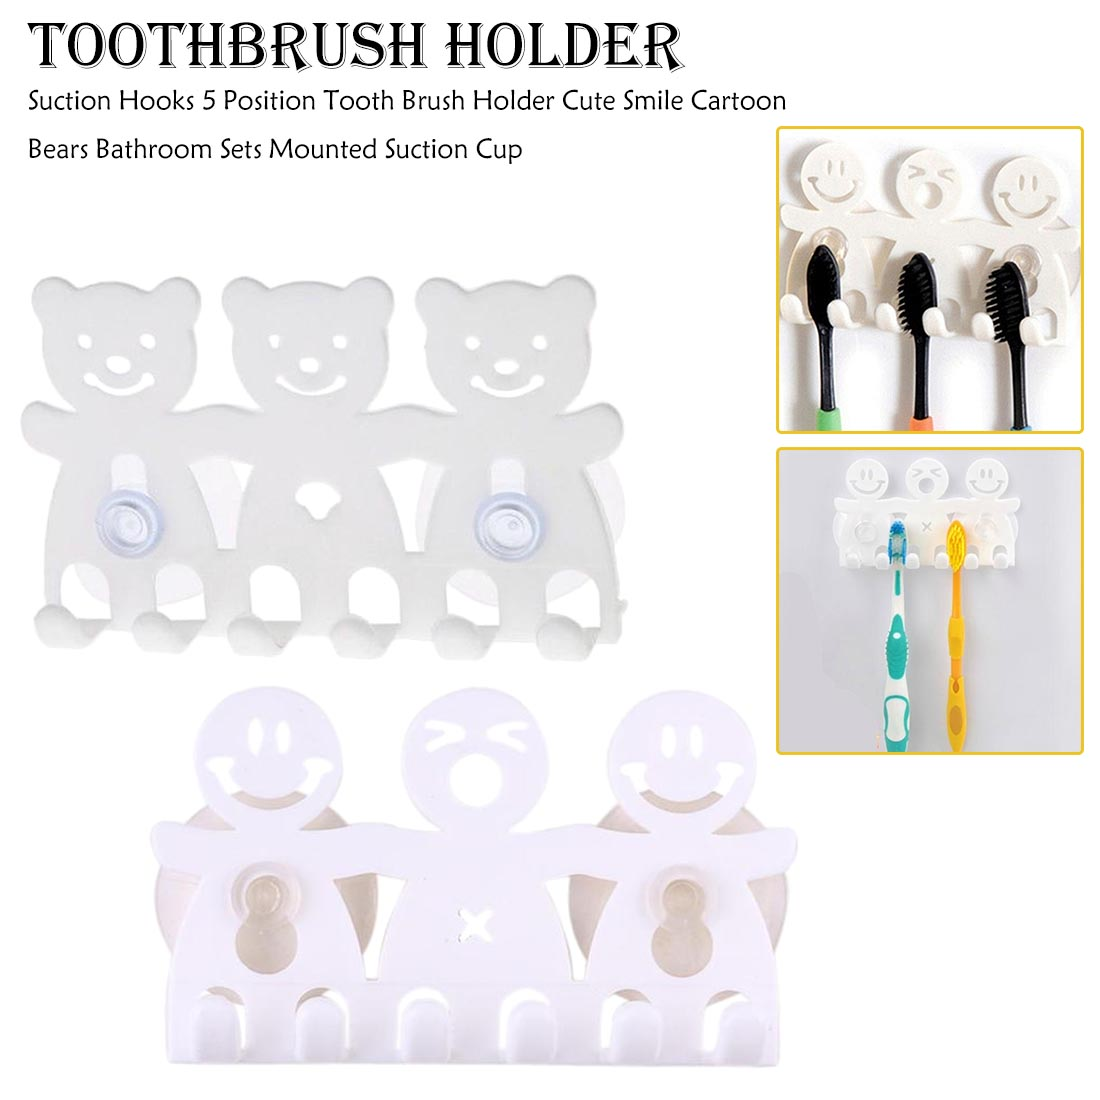 Toothbrush Holder White Travel Stand Toilet Shaver Organizer Kids Tooth Brush Storage Rack Bathroom Accessories Smile